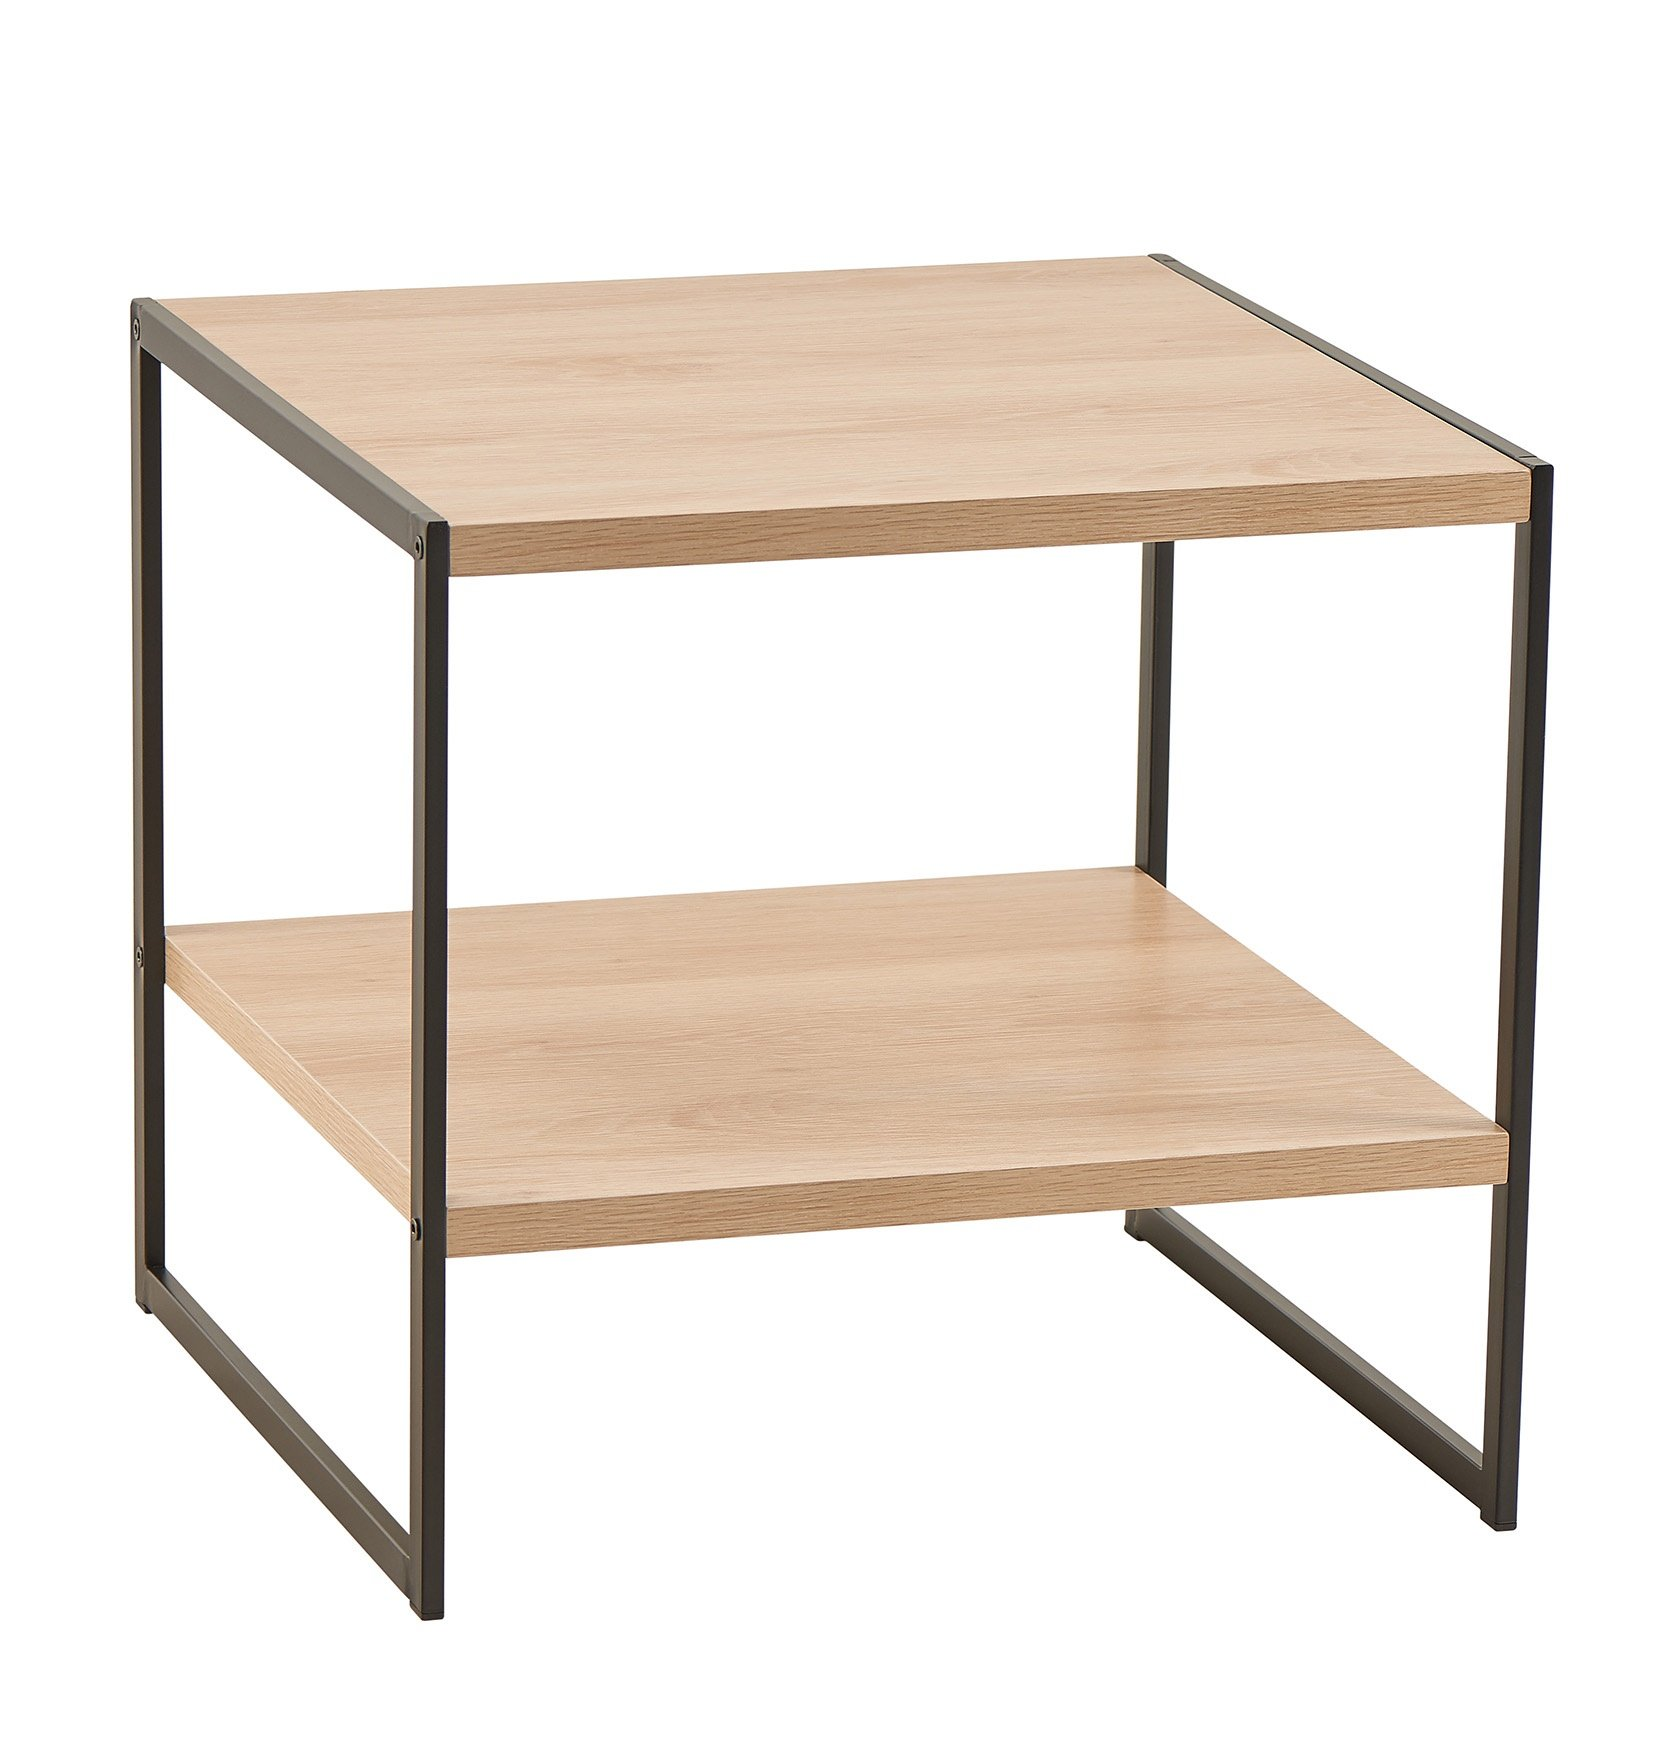 ClosetMaid 1310 2-Tier Square Wood Side Table with Storage Shelf, Natural